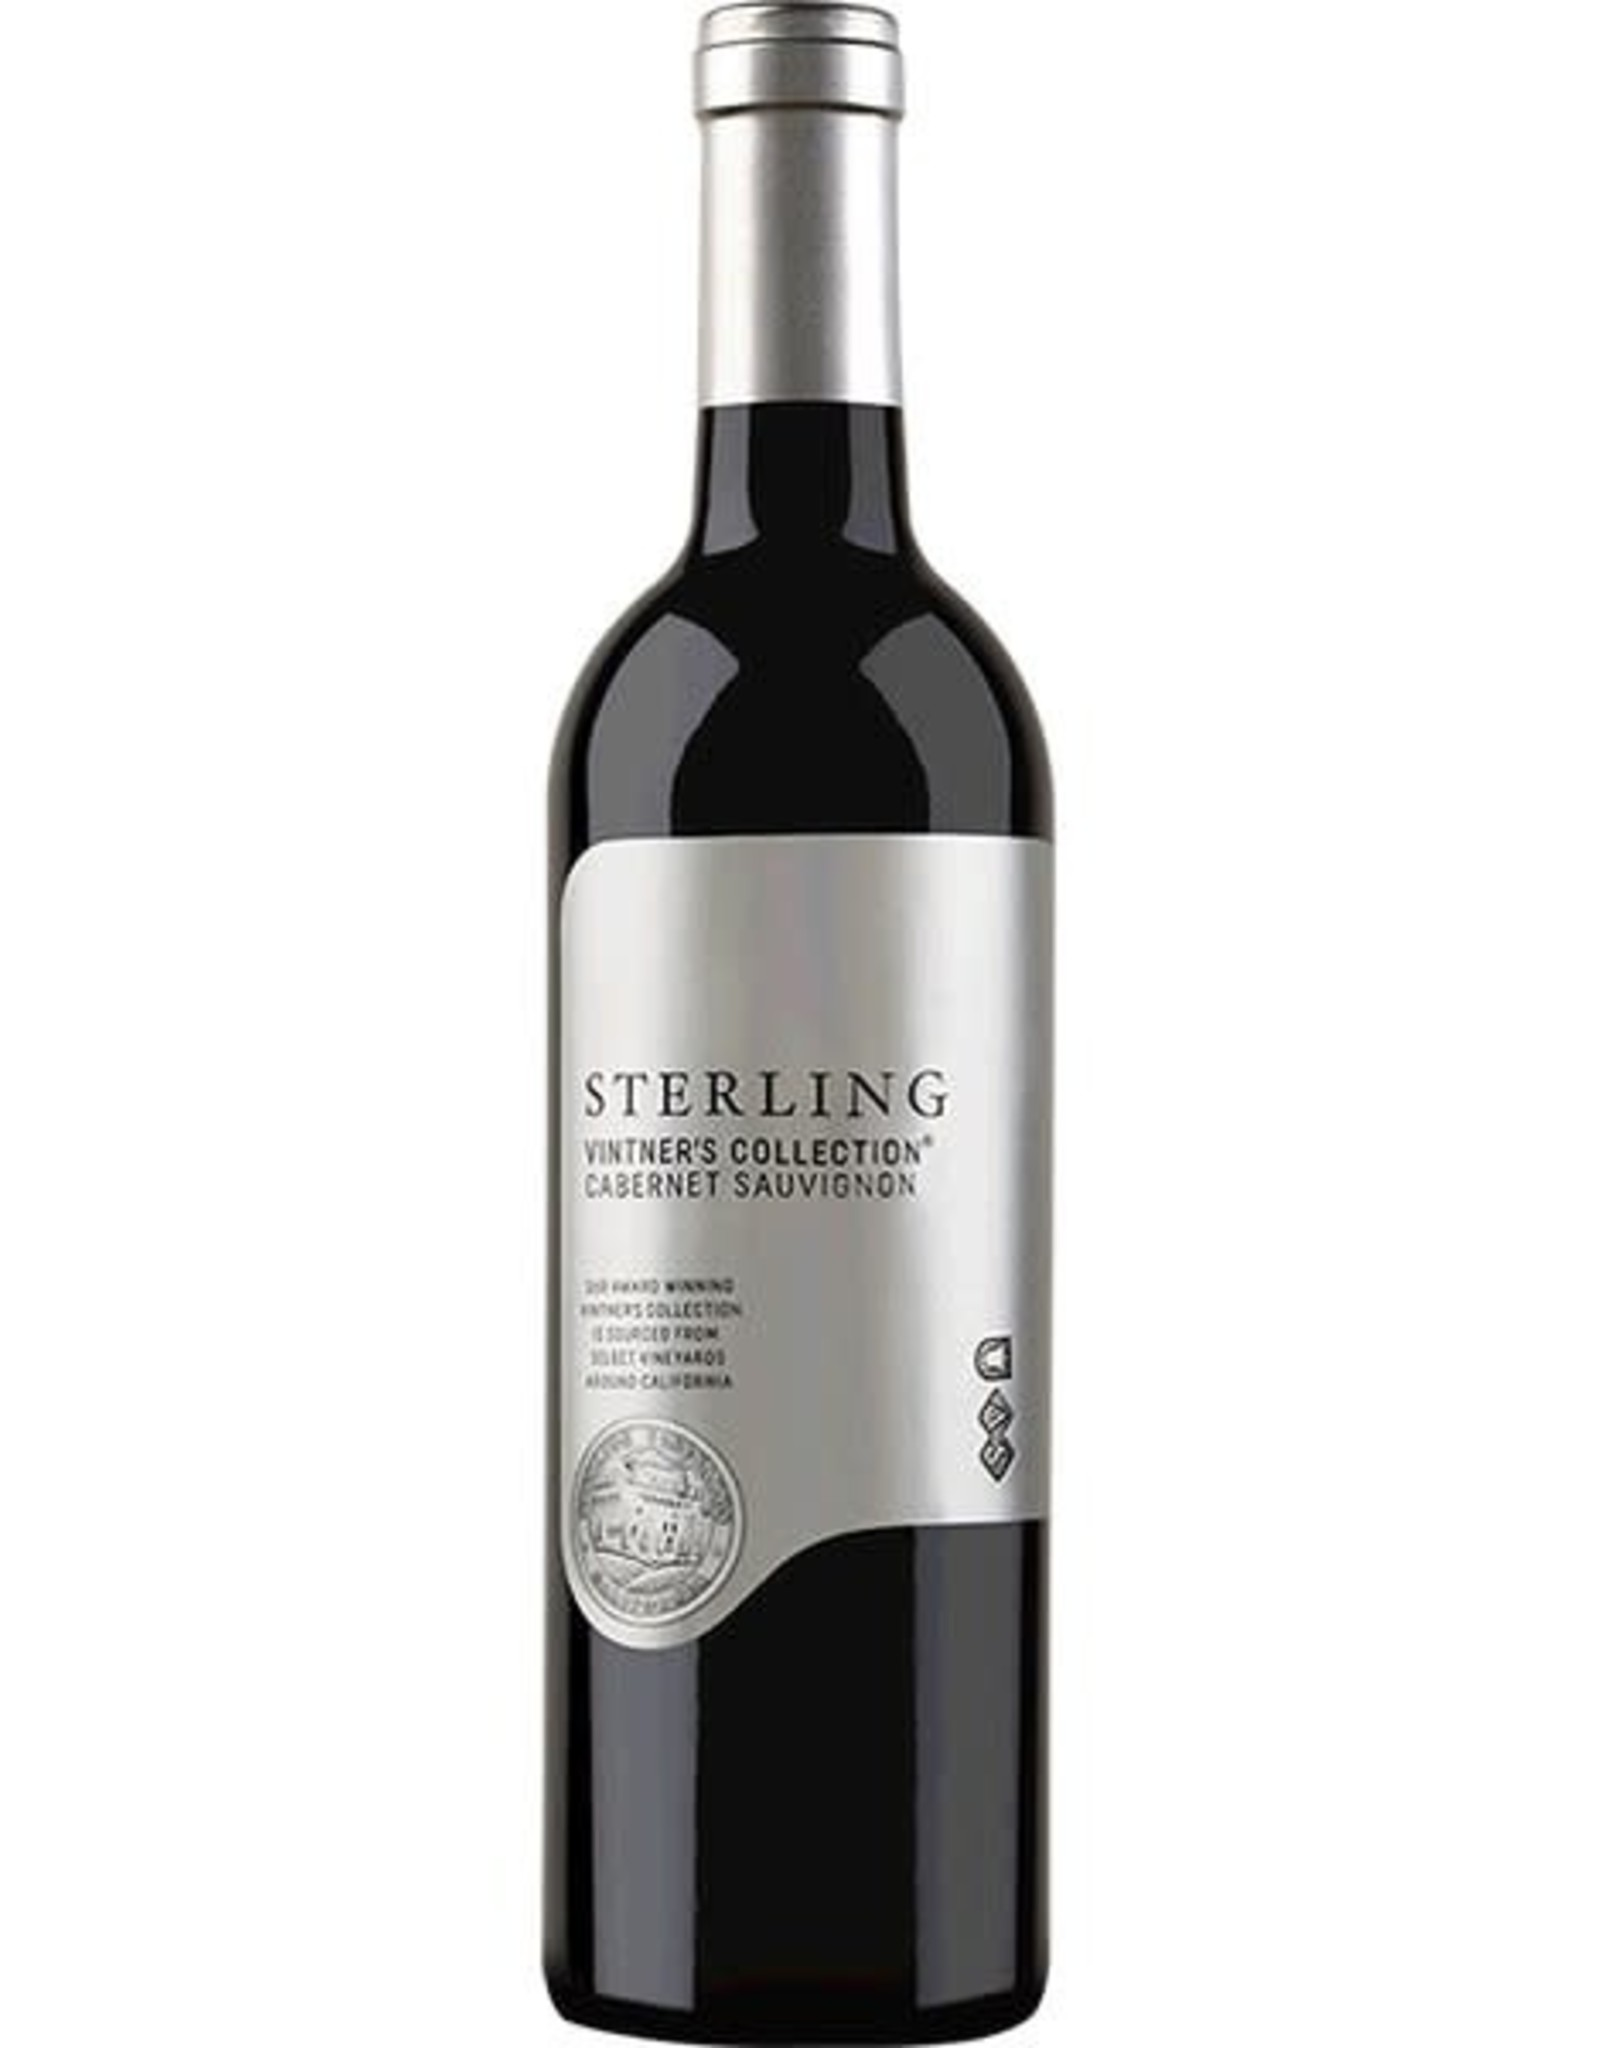 STERLING VINTERS COLLECTION CAB 750